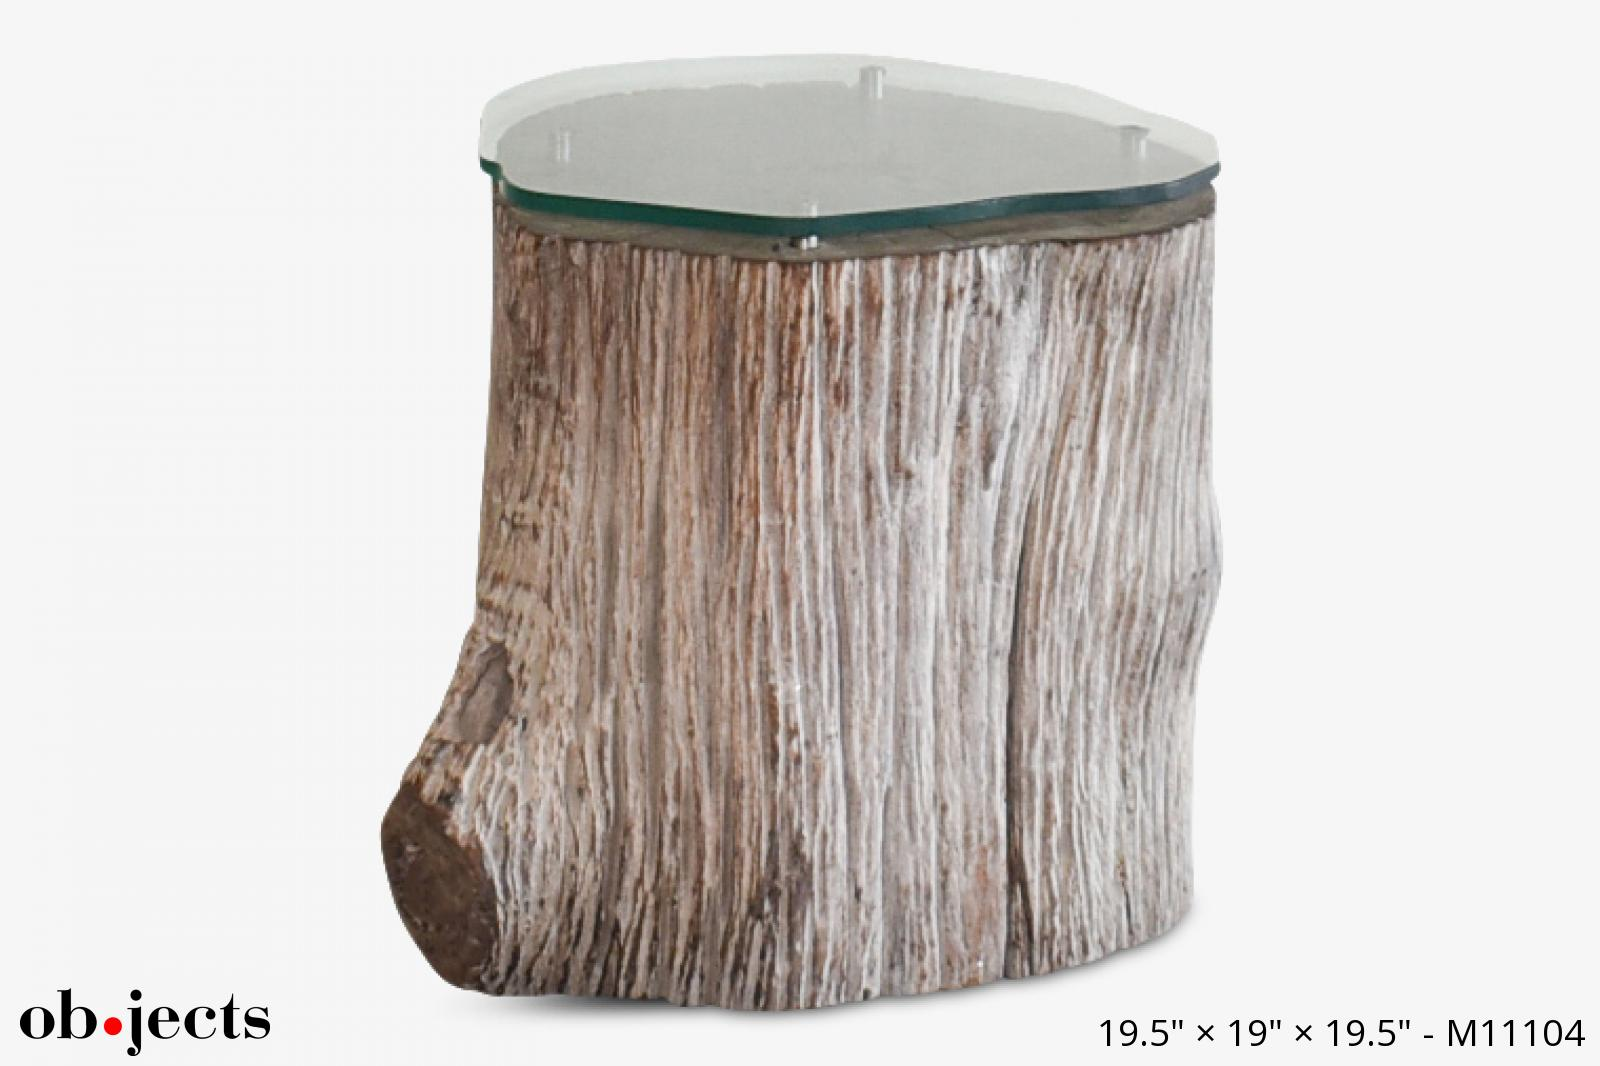 table tree stump w glass top ob jects